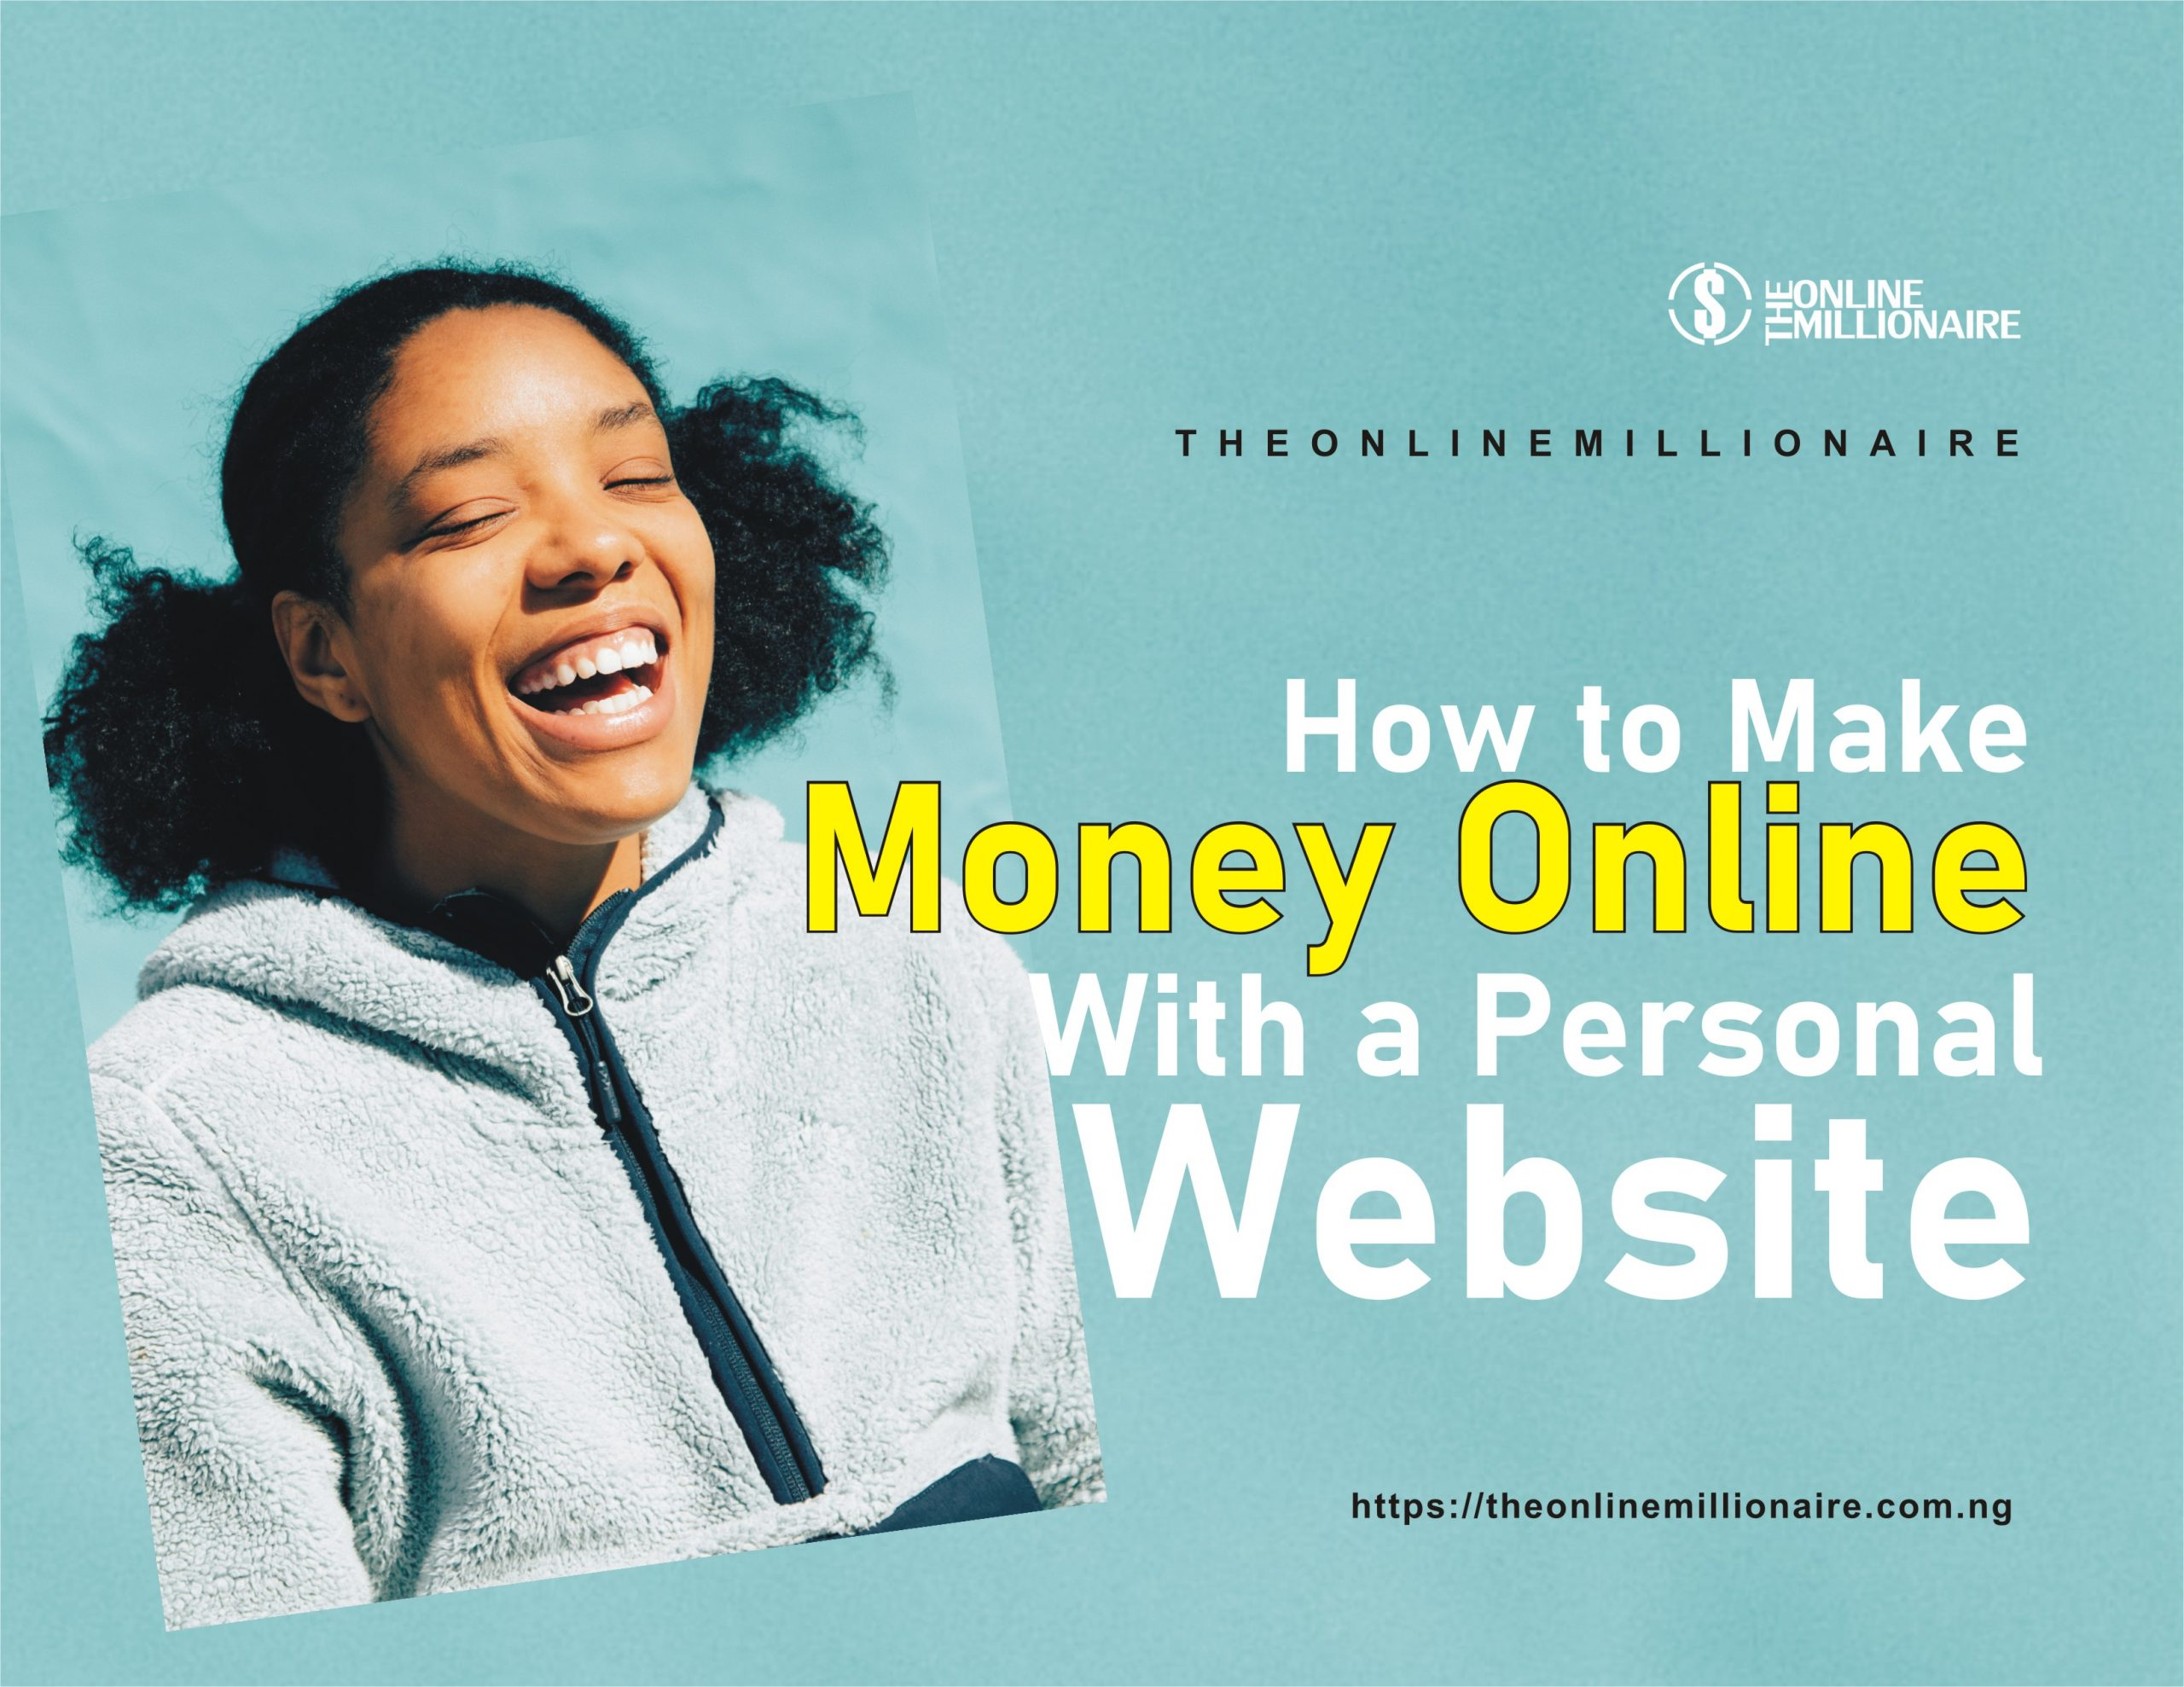 How to Make Money Online With a Personal Website.